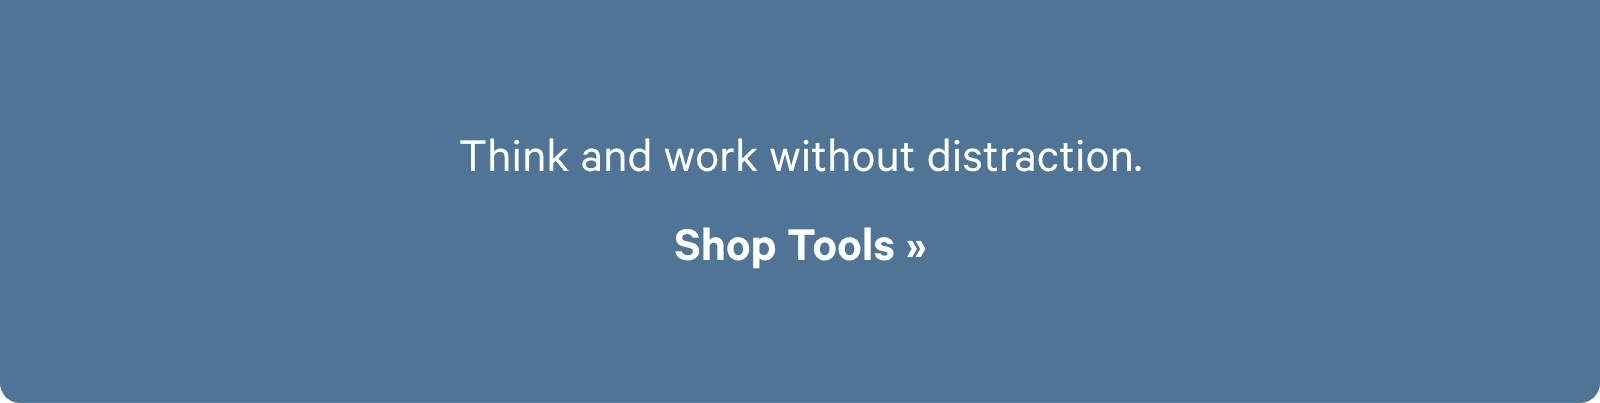 Think and work without distraction. Shop Tools ?